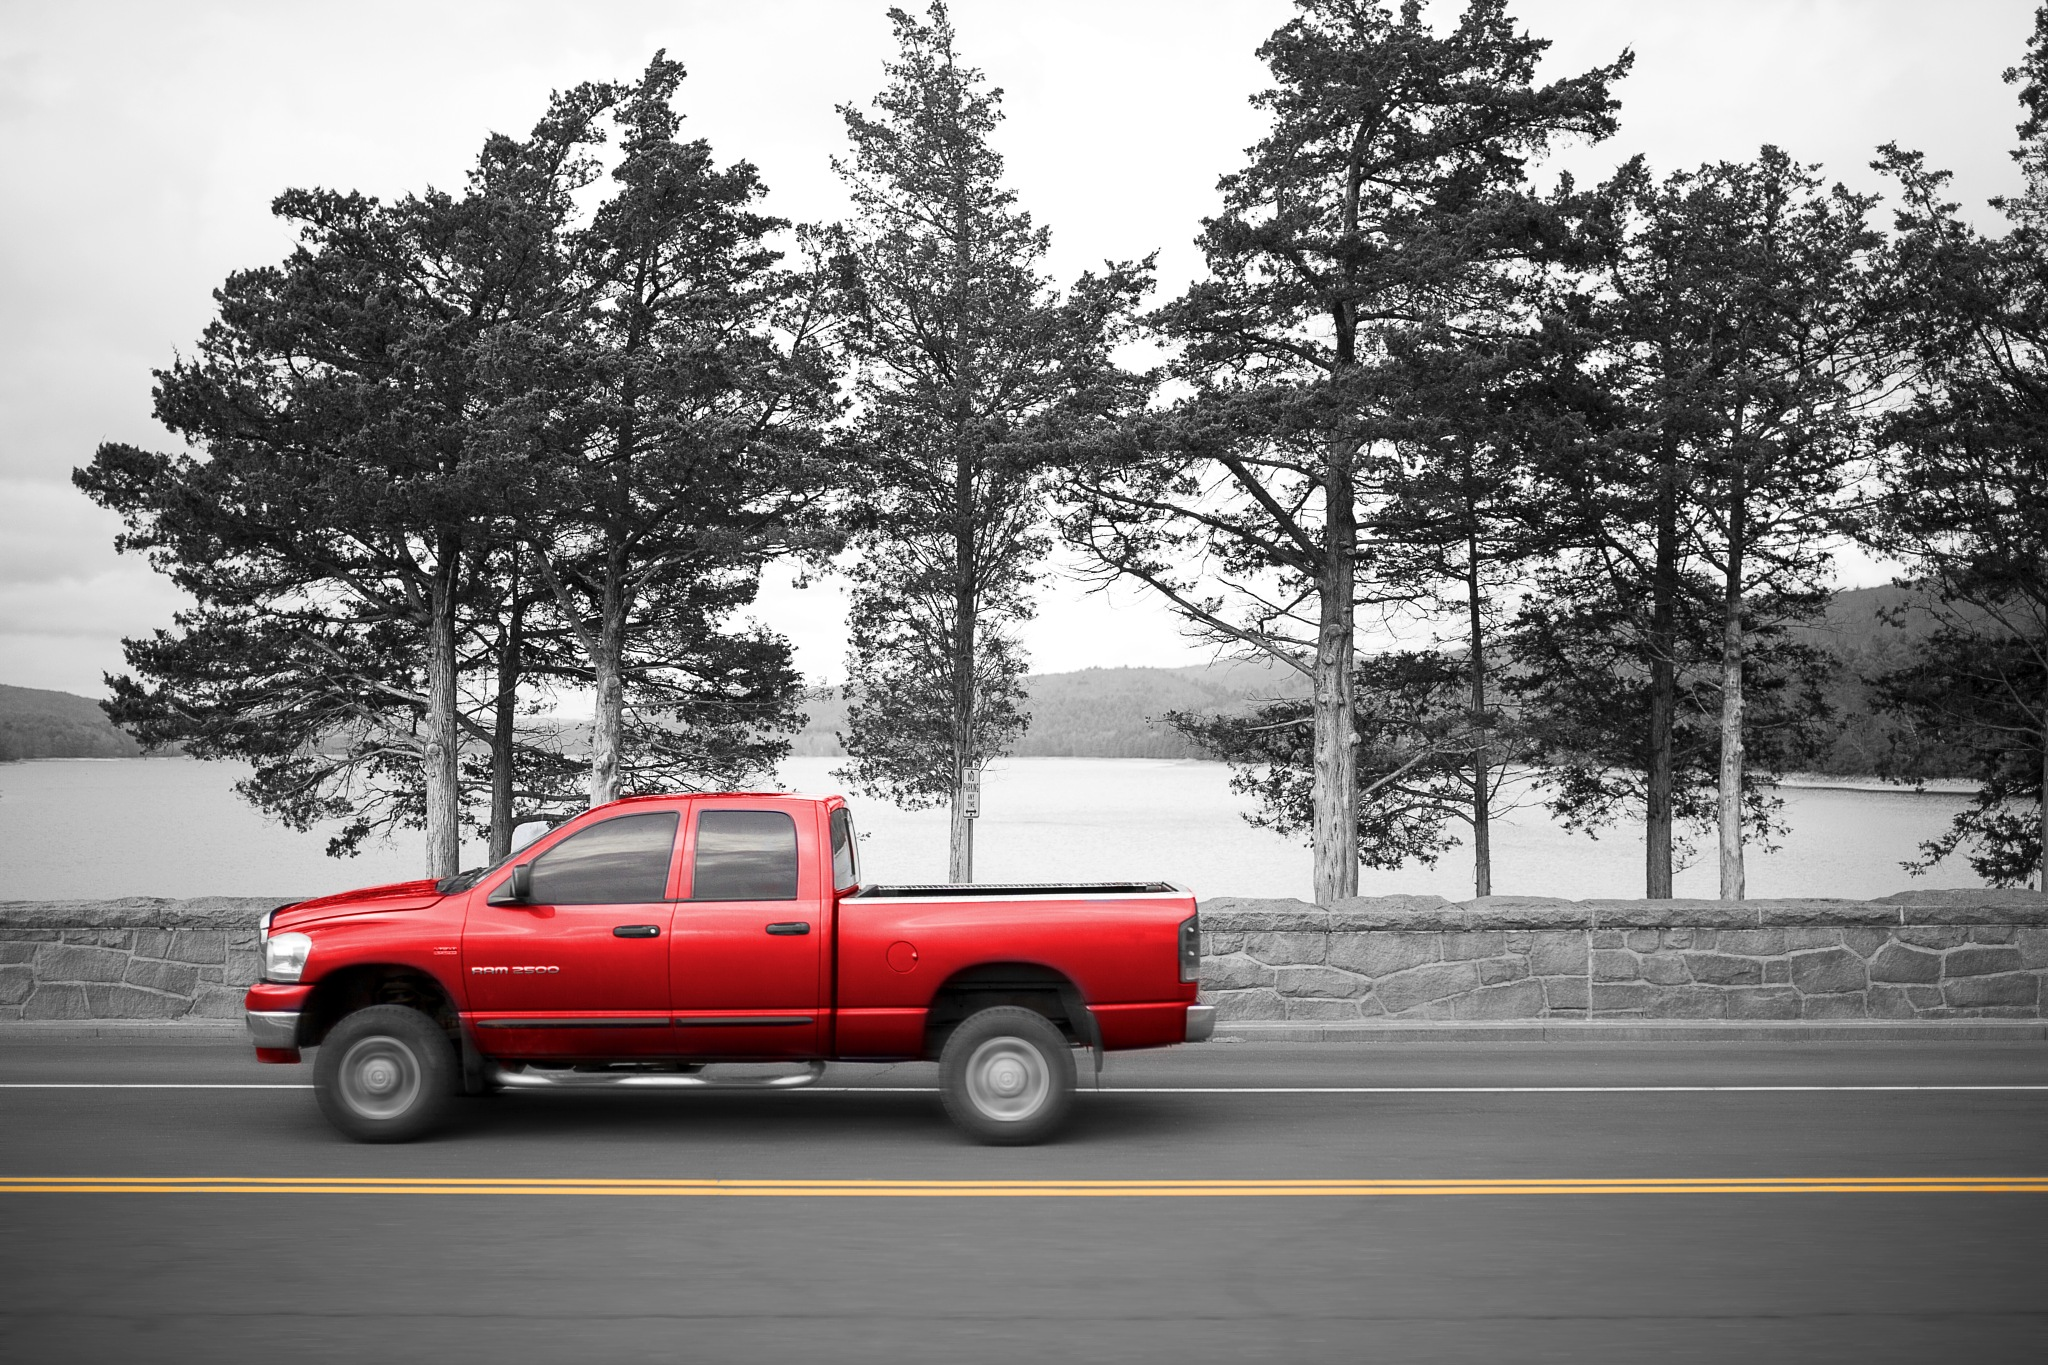 The red pickup by Lorrie Joaus